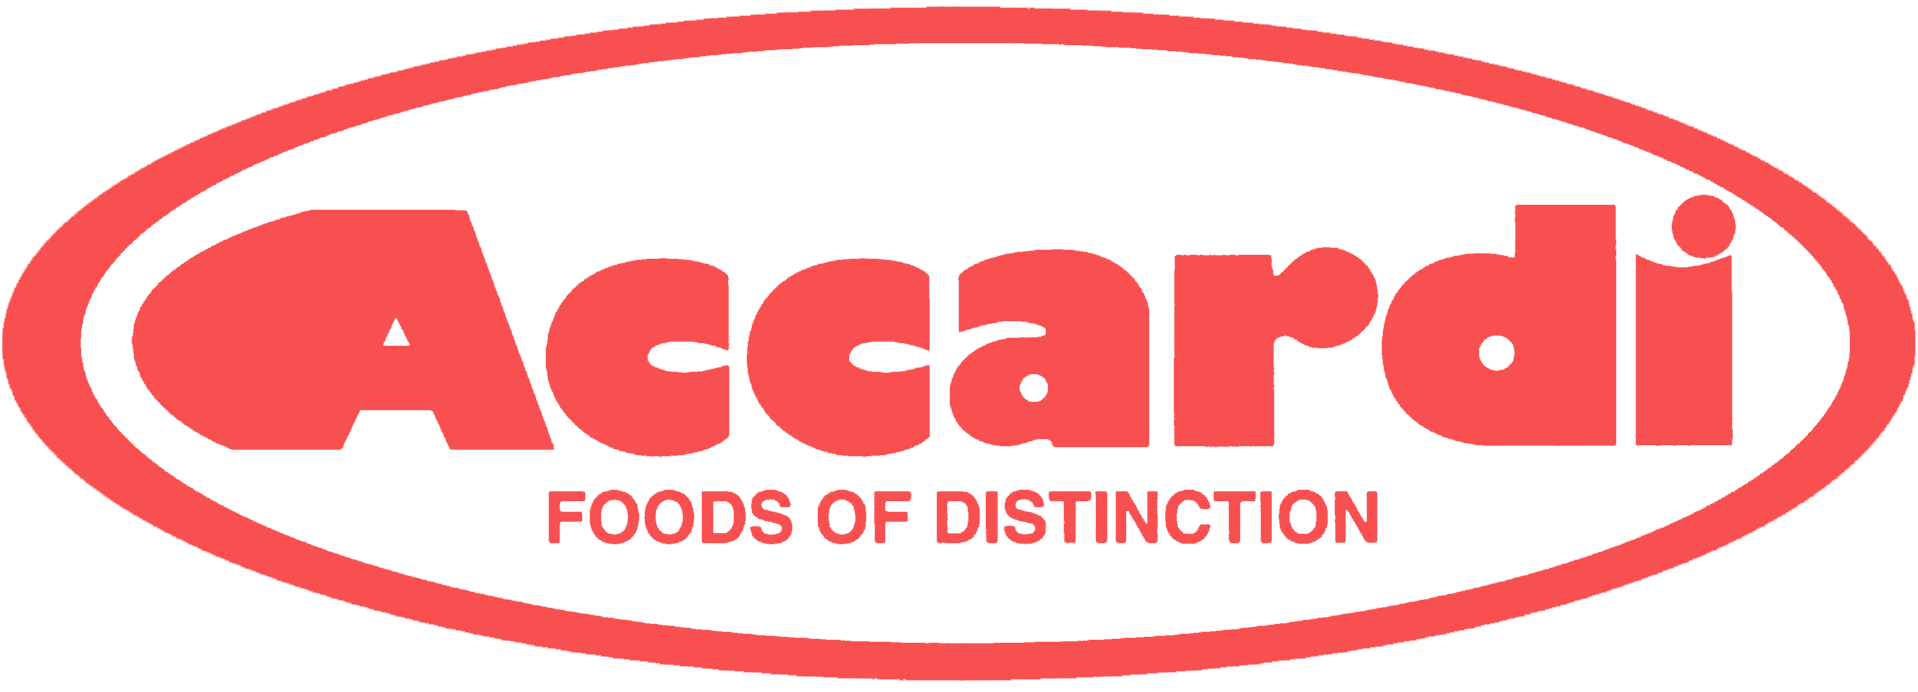 Accardi Foods